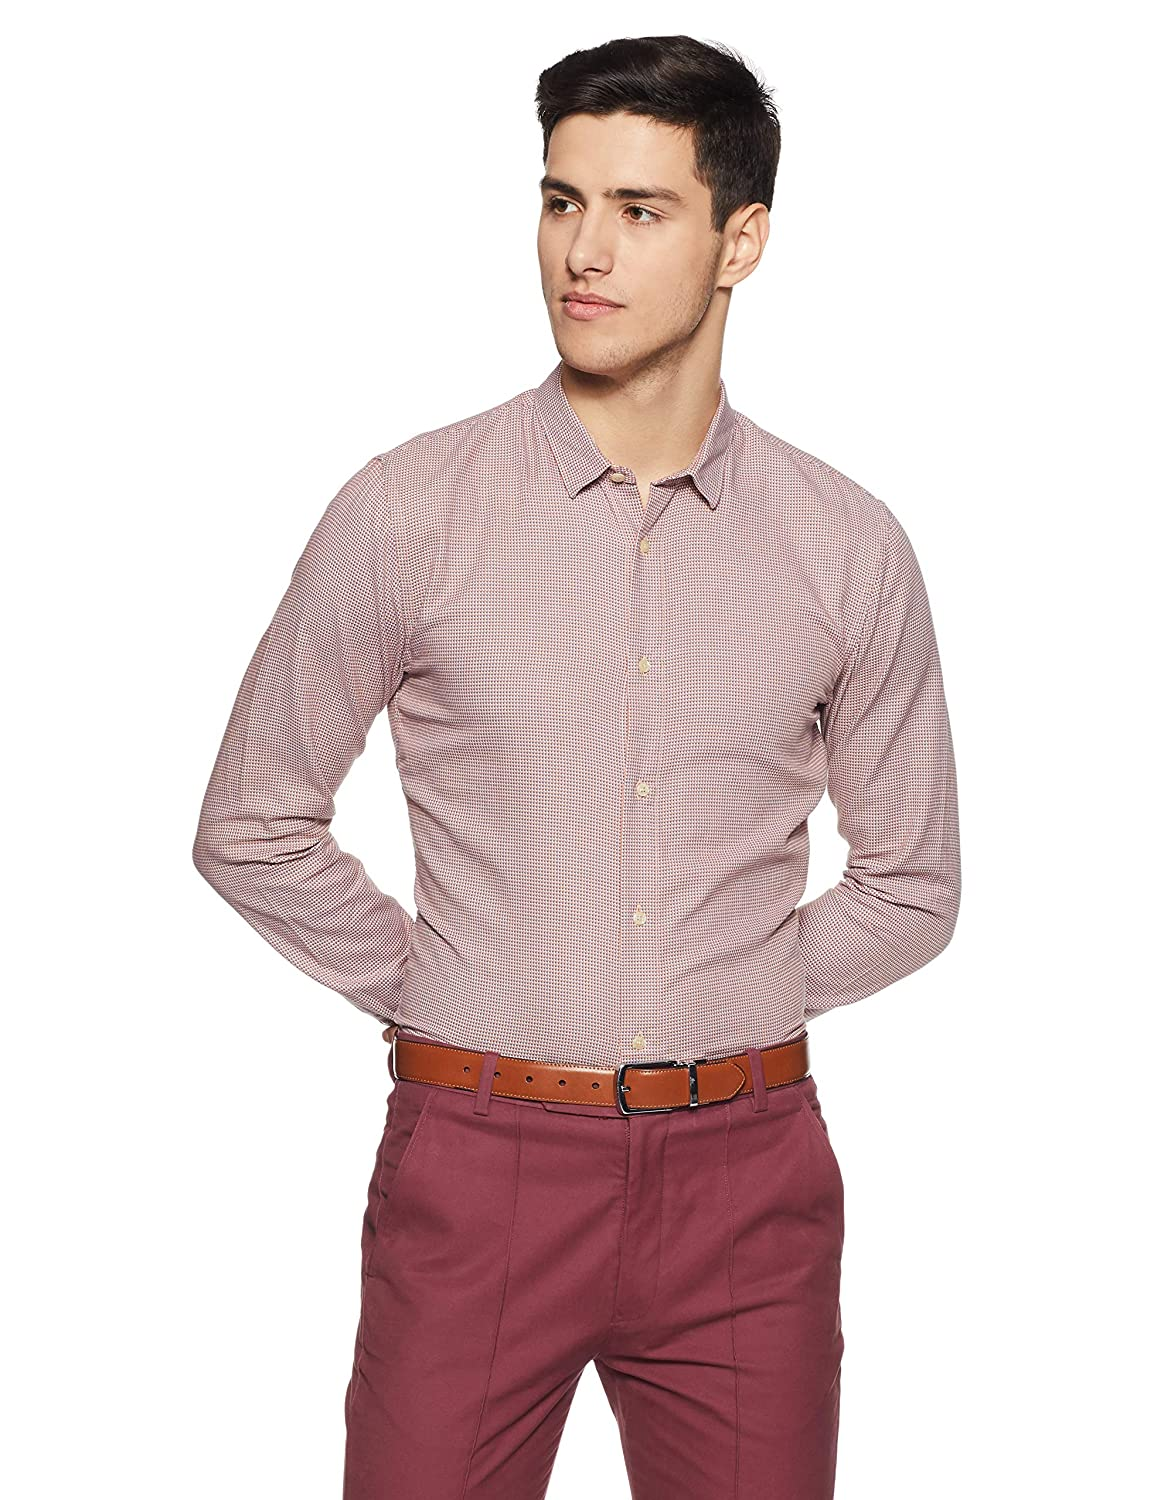 Image of Casual Button-Down Shirts Scotch & Soda Men's Slim Fit Classic Shirt in Structured Weave